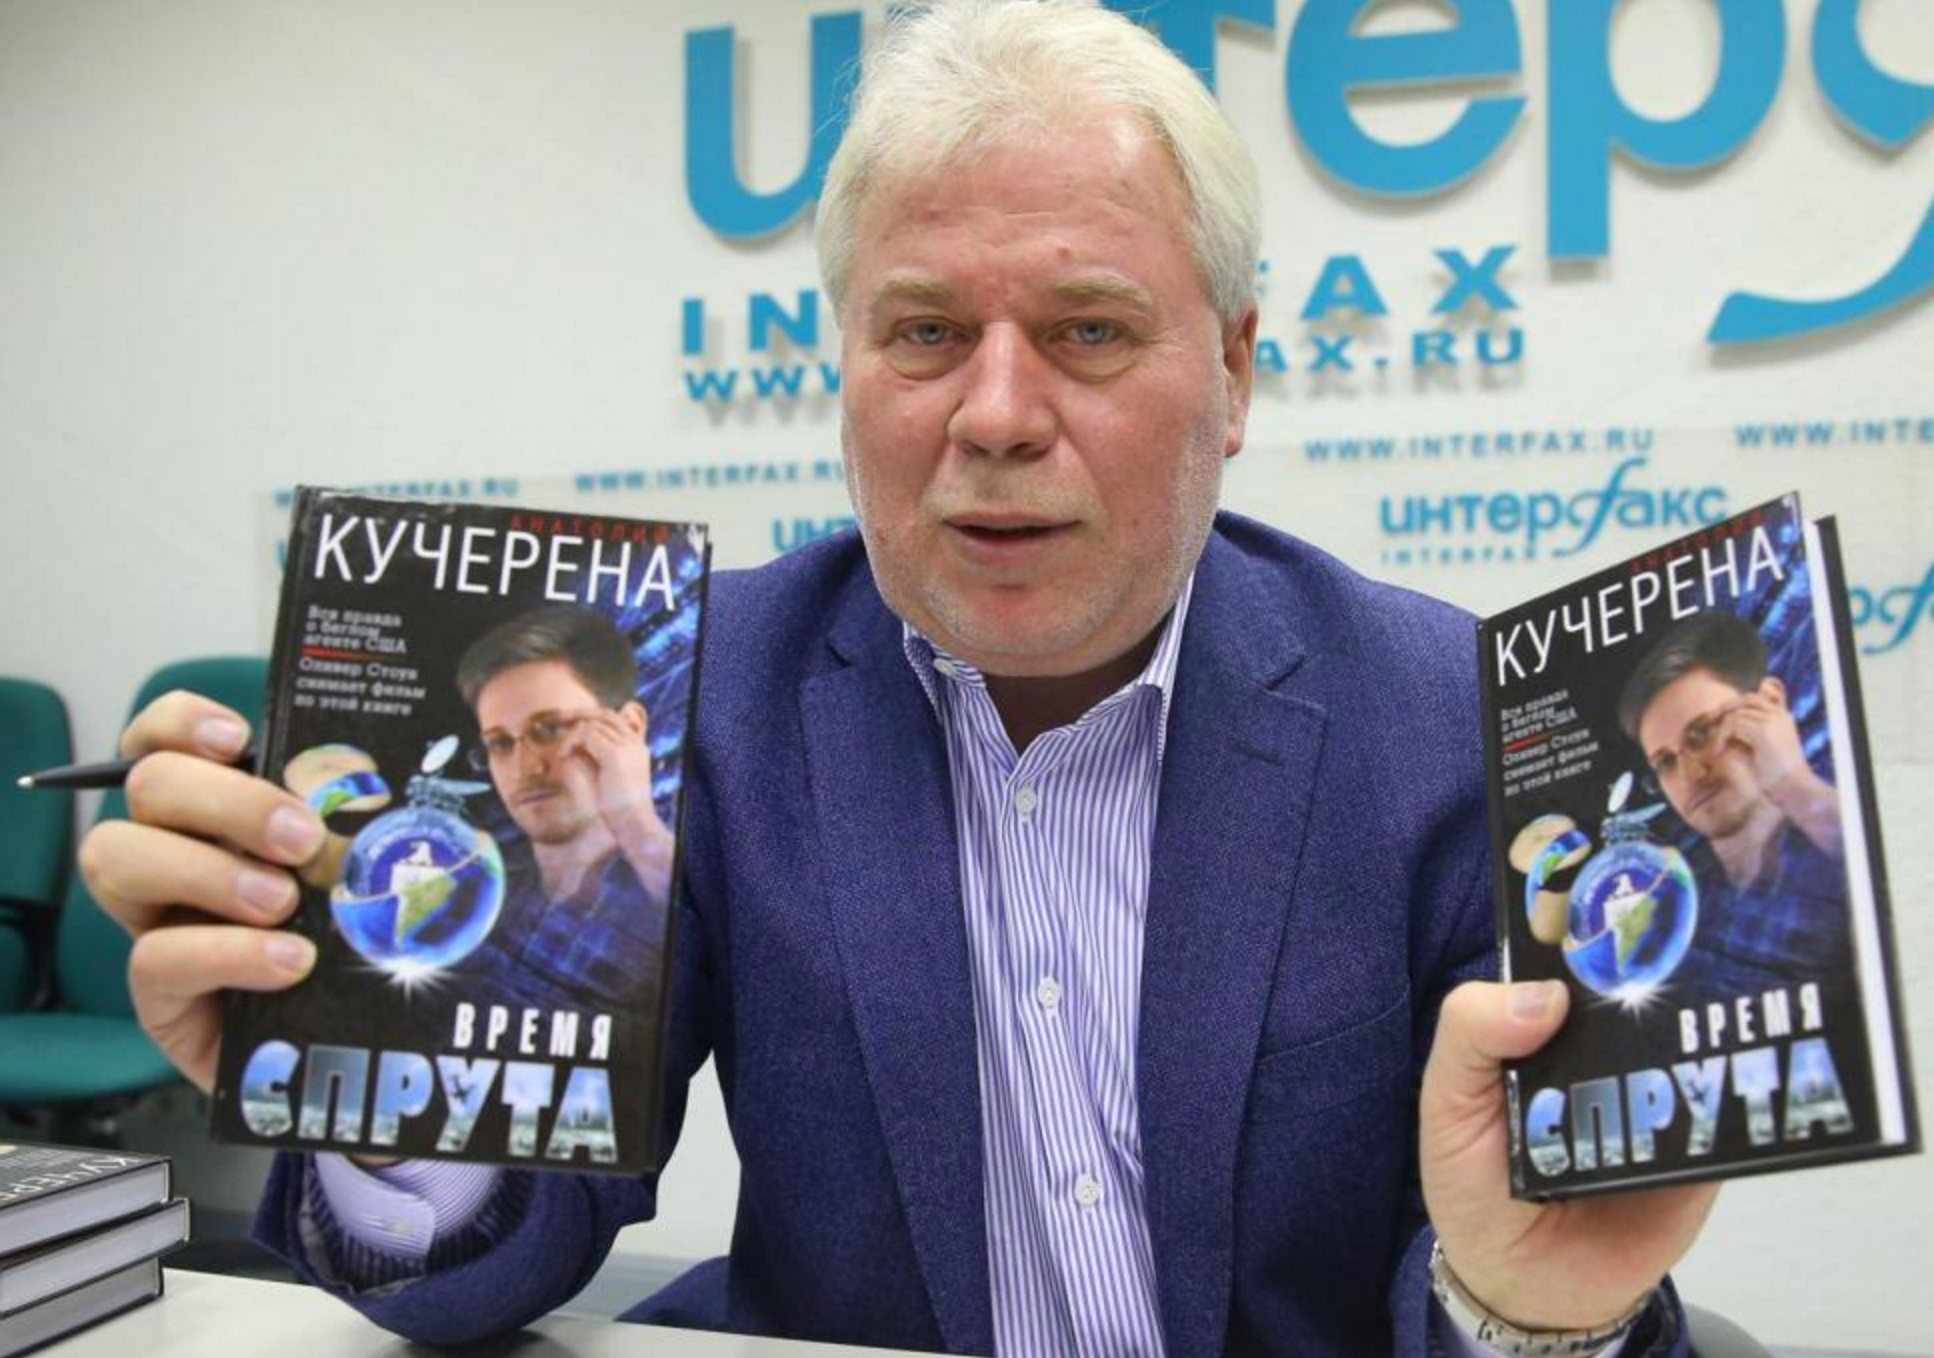 Edward Snowden's attorney in Russia, Anatoly Kucherena, has written a novel called <em>Time of the Octopus</em> about an American intelligence agent who is modeled on Snowden.